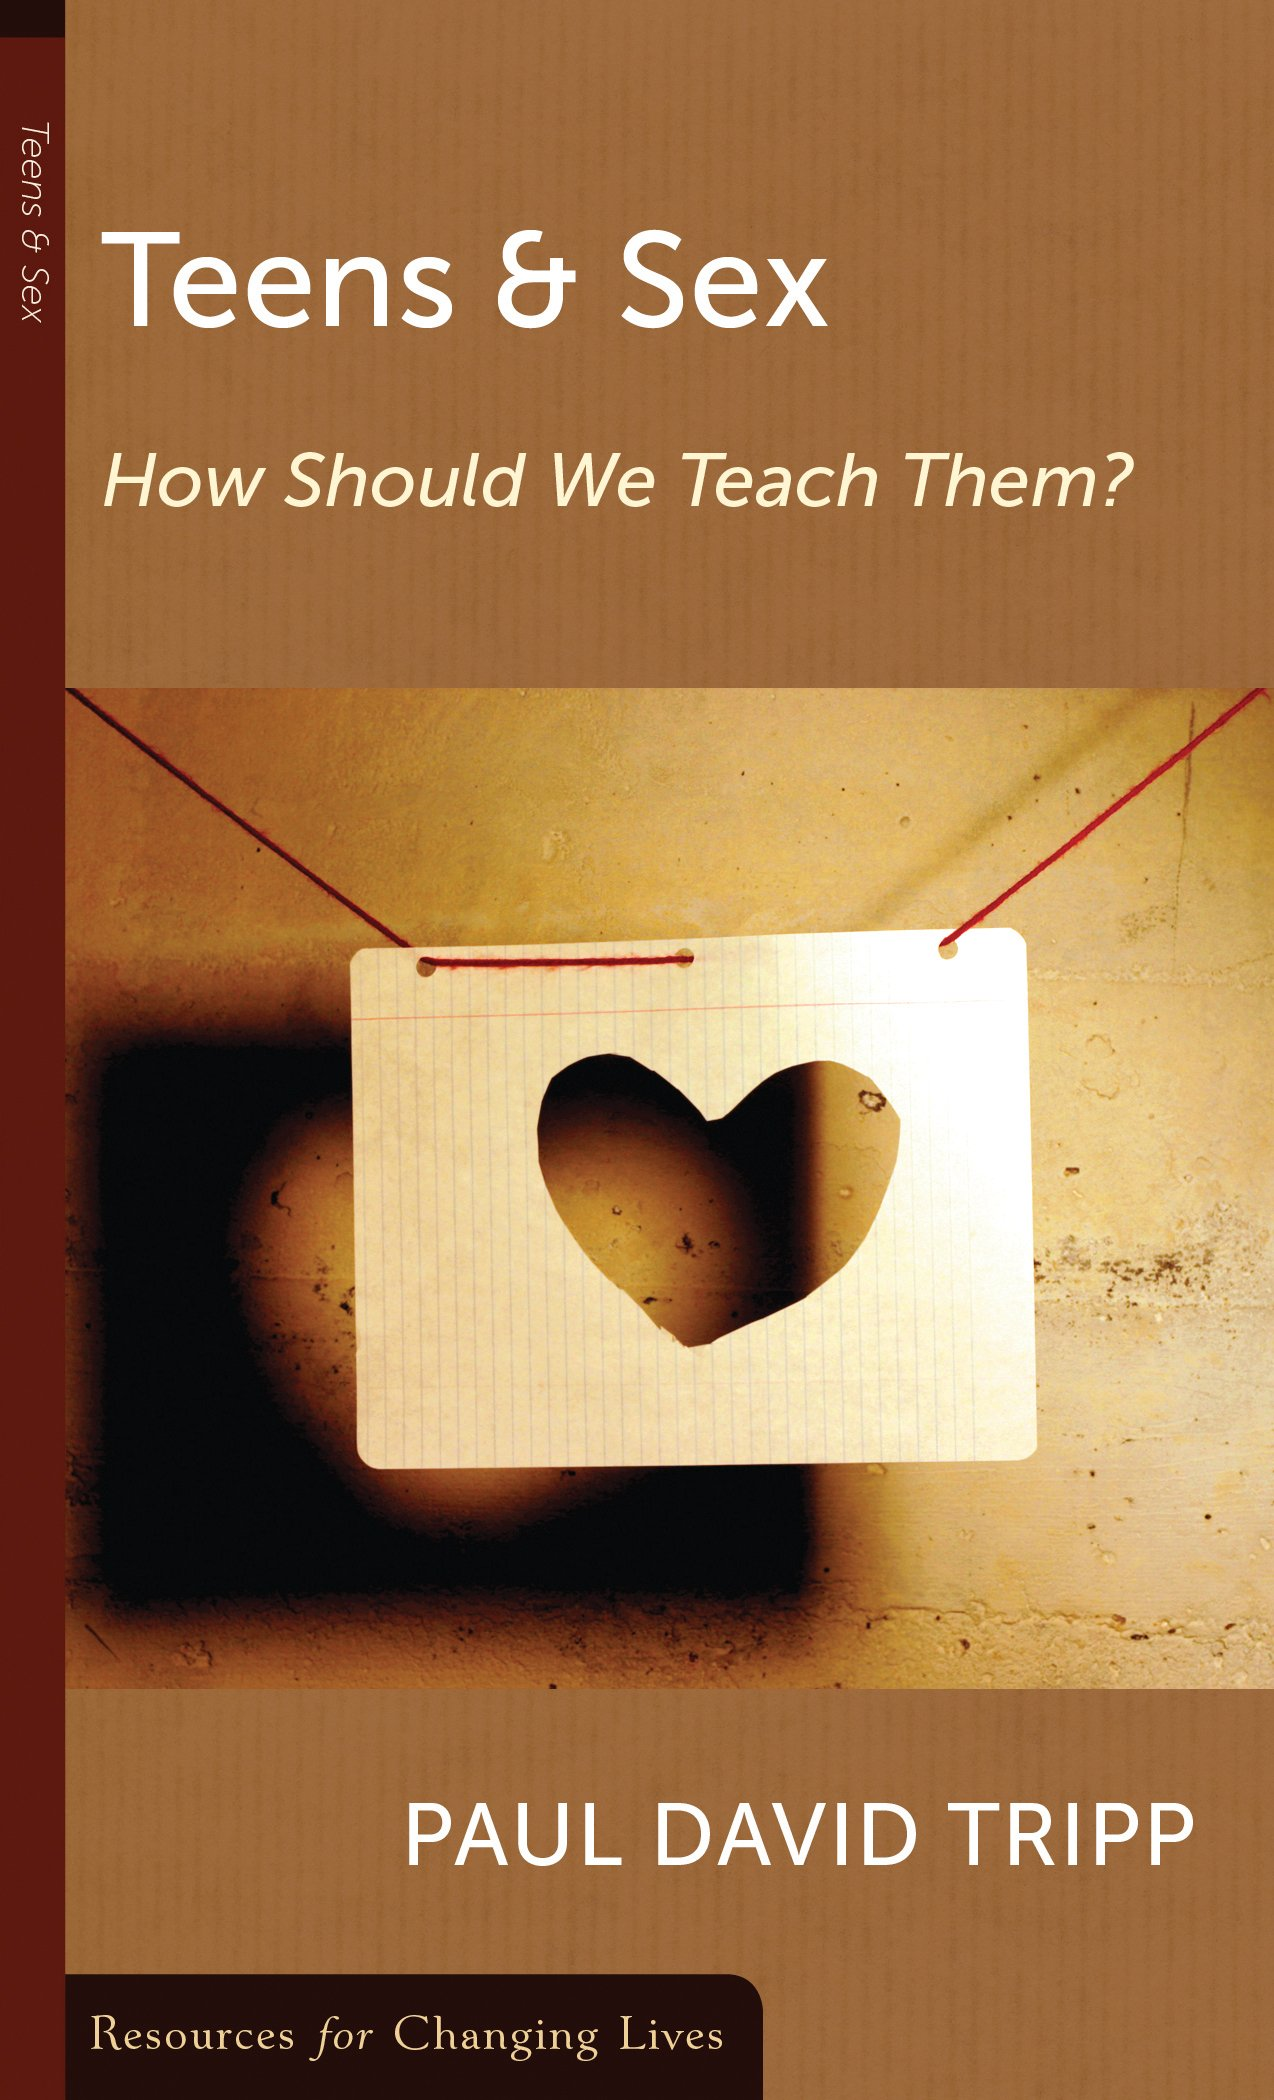 Teens & Sex: How Should We Teach Them? (Resources for Changing Lives) ebook